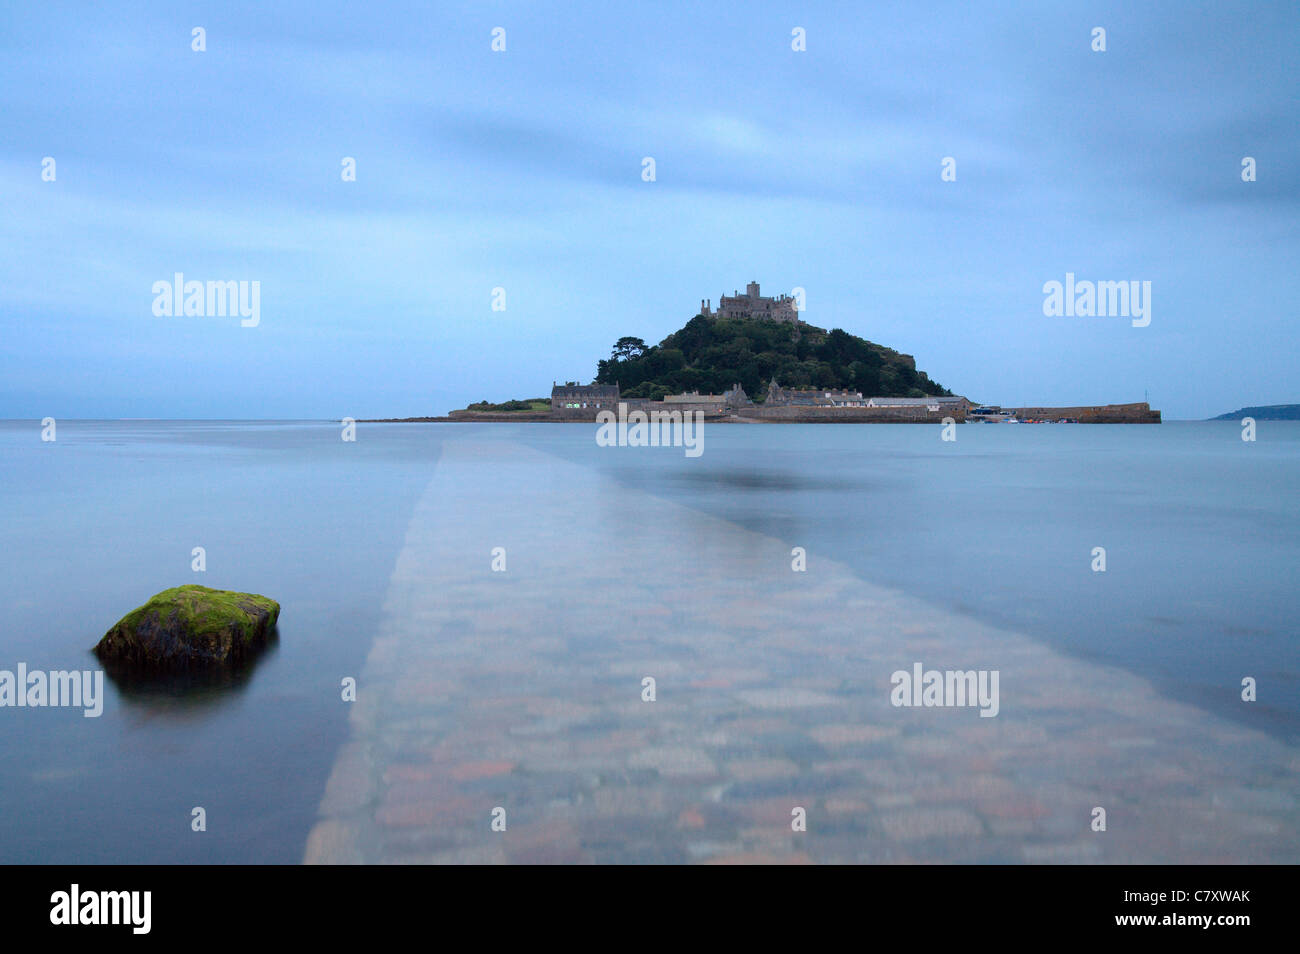 Causeway, looking out across the sea to 'St Michaels Mount' Marazion Cornwall - Stock Image